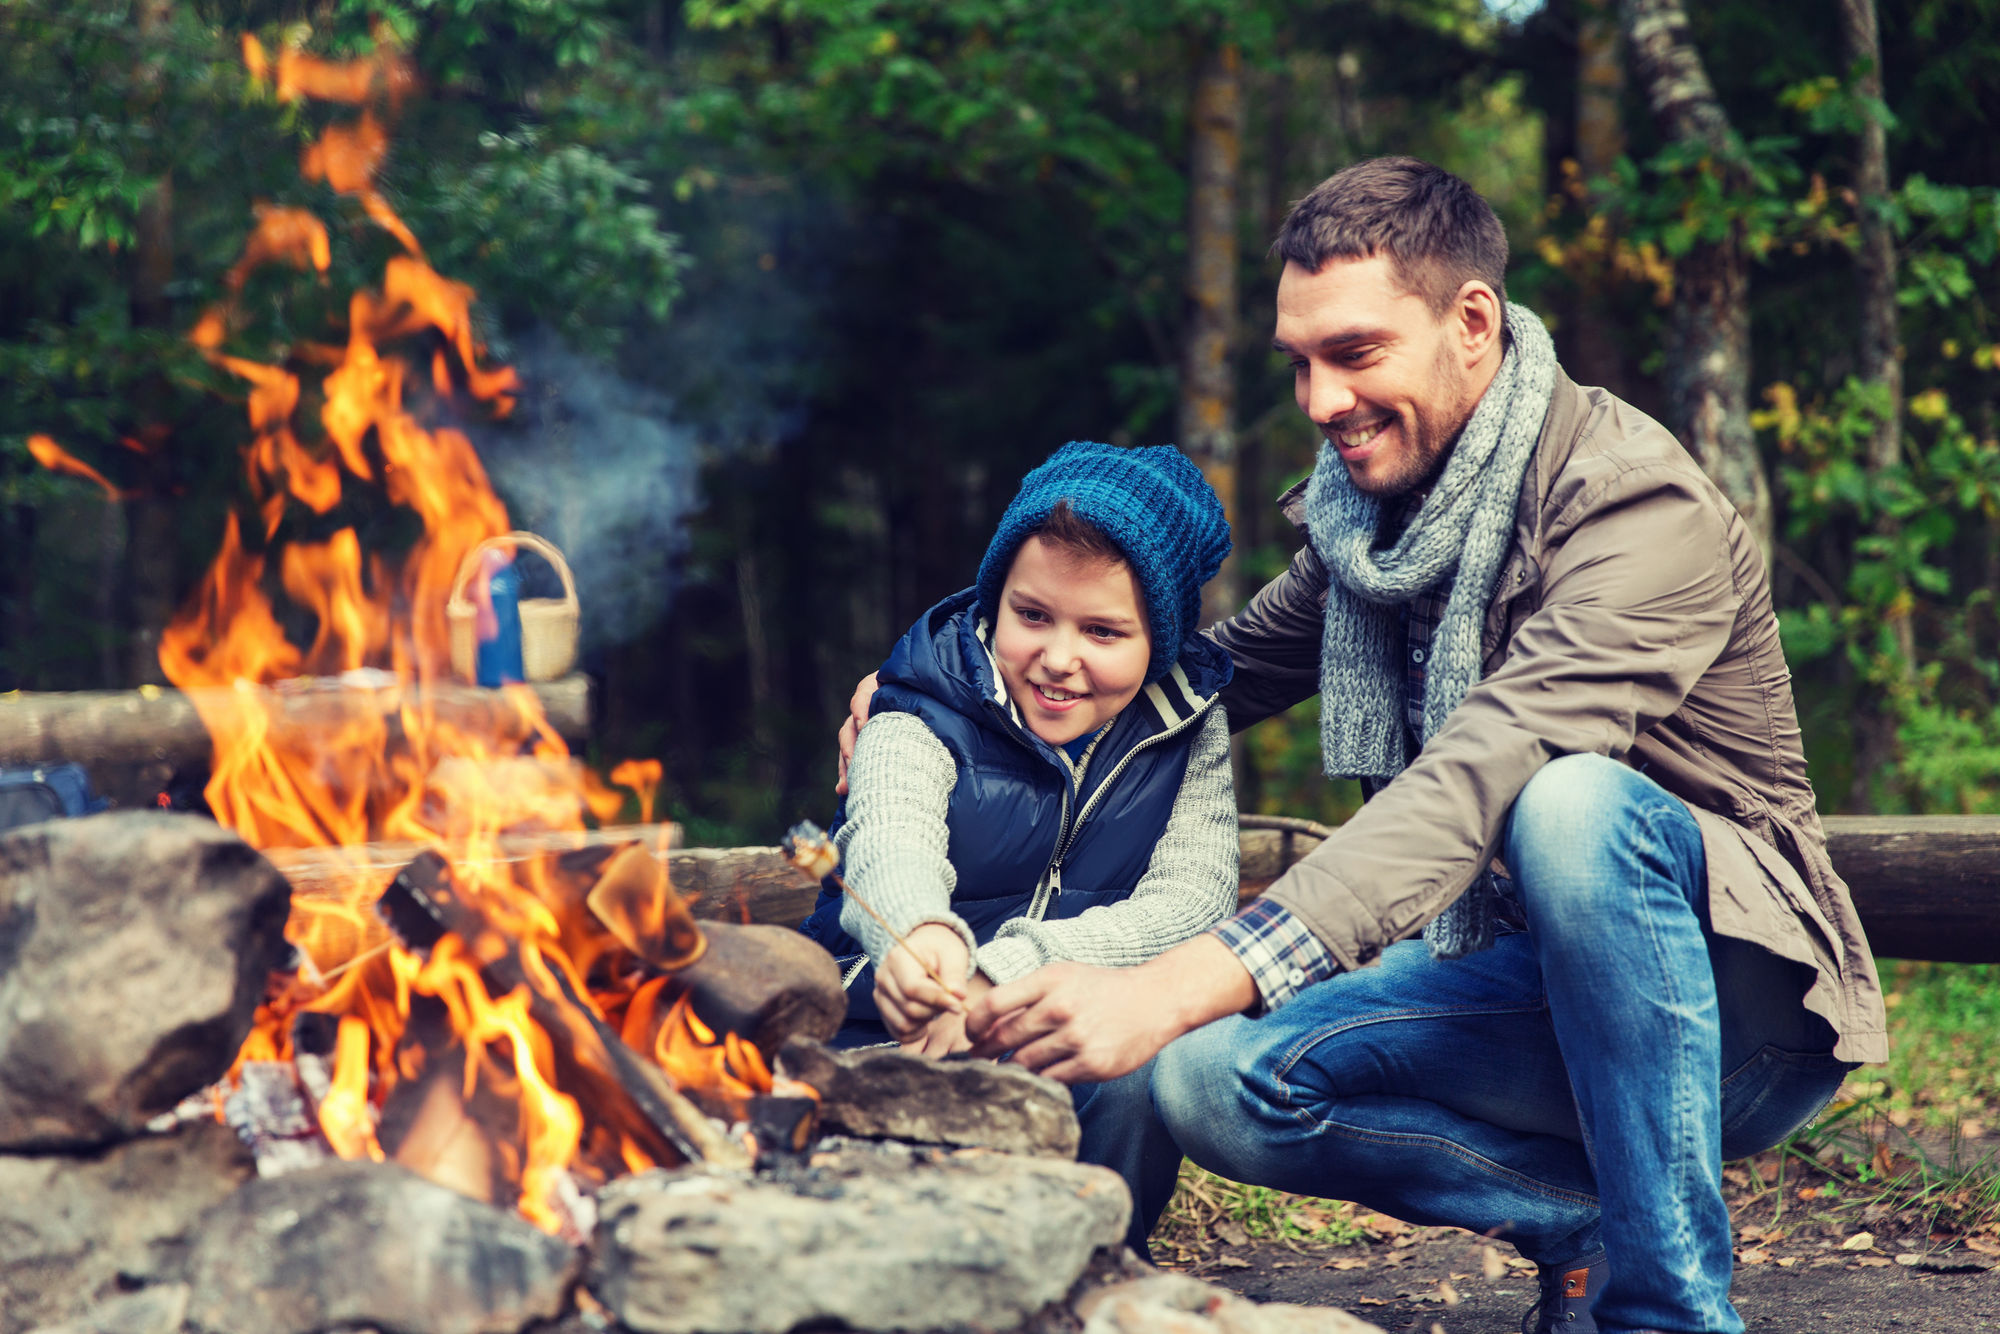 Father and son build a bonfire